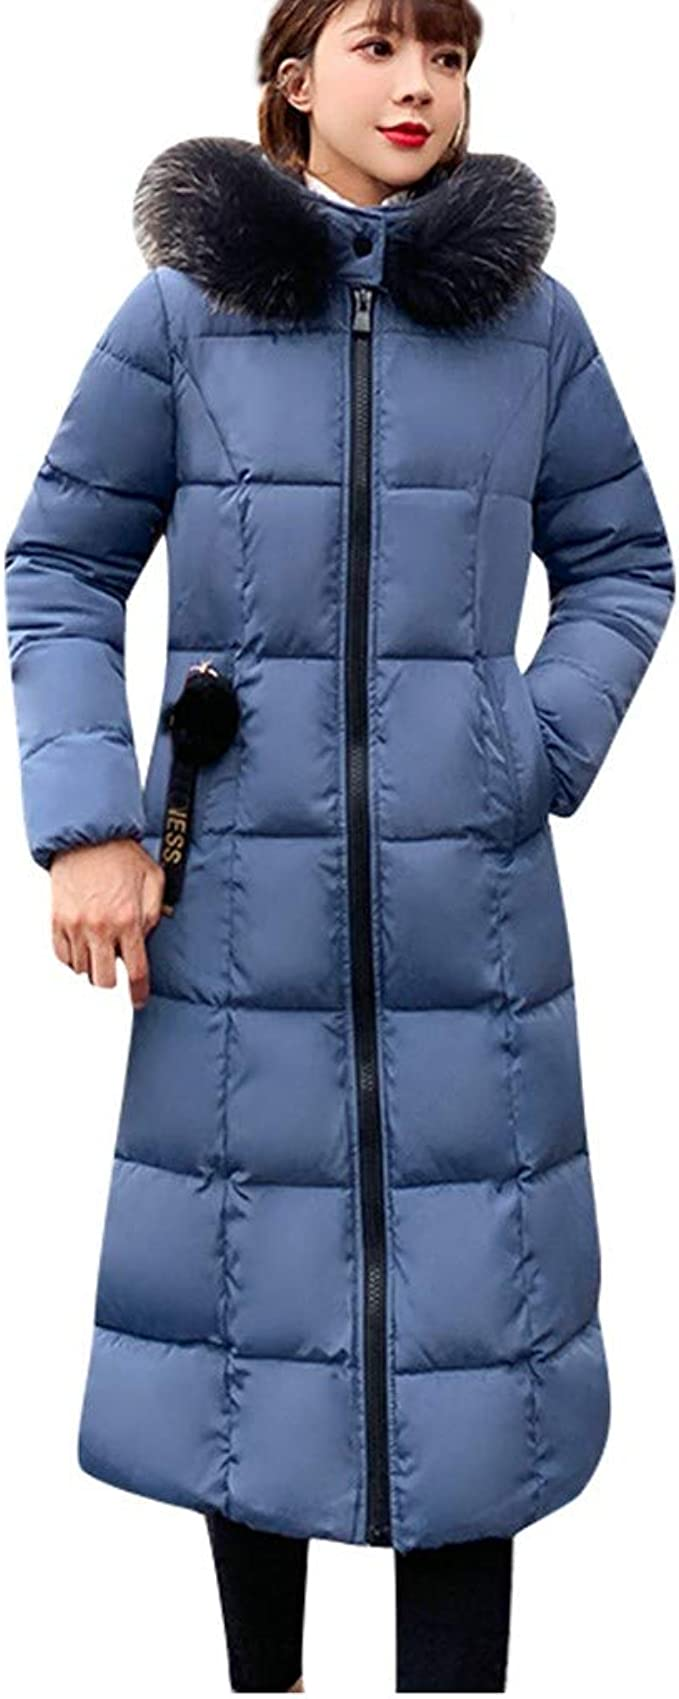 Obosoyo Womens Hooded Thickened Long Down Jacket Winter Down Parka Puffer Jacket